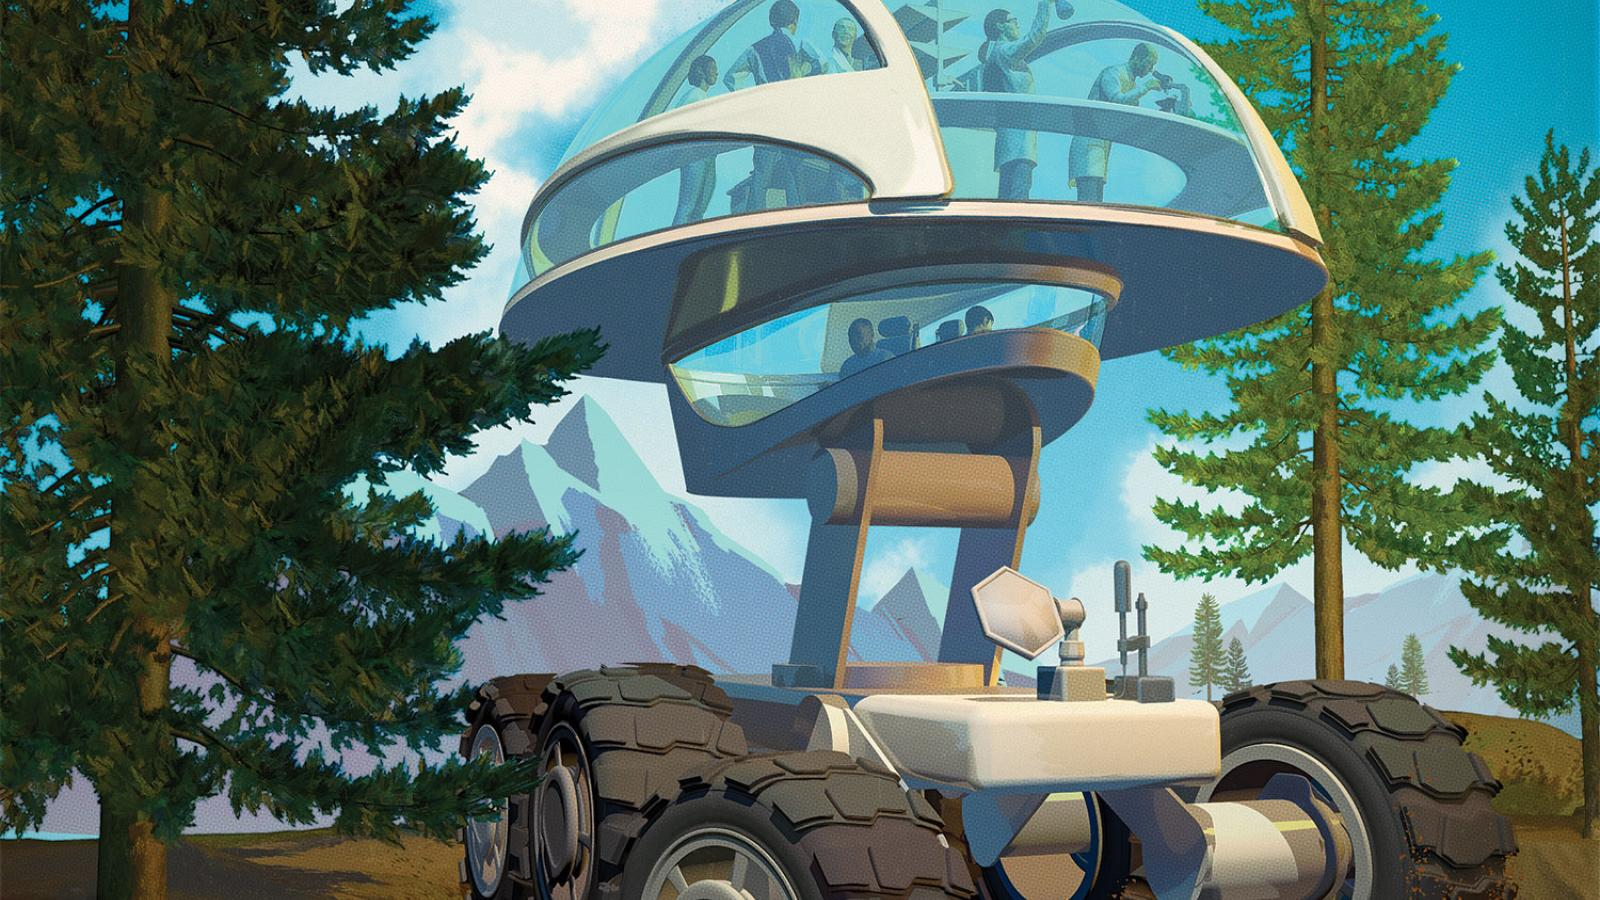 futuristic vehicle in a forest